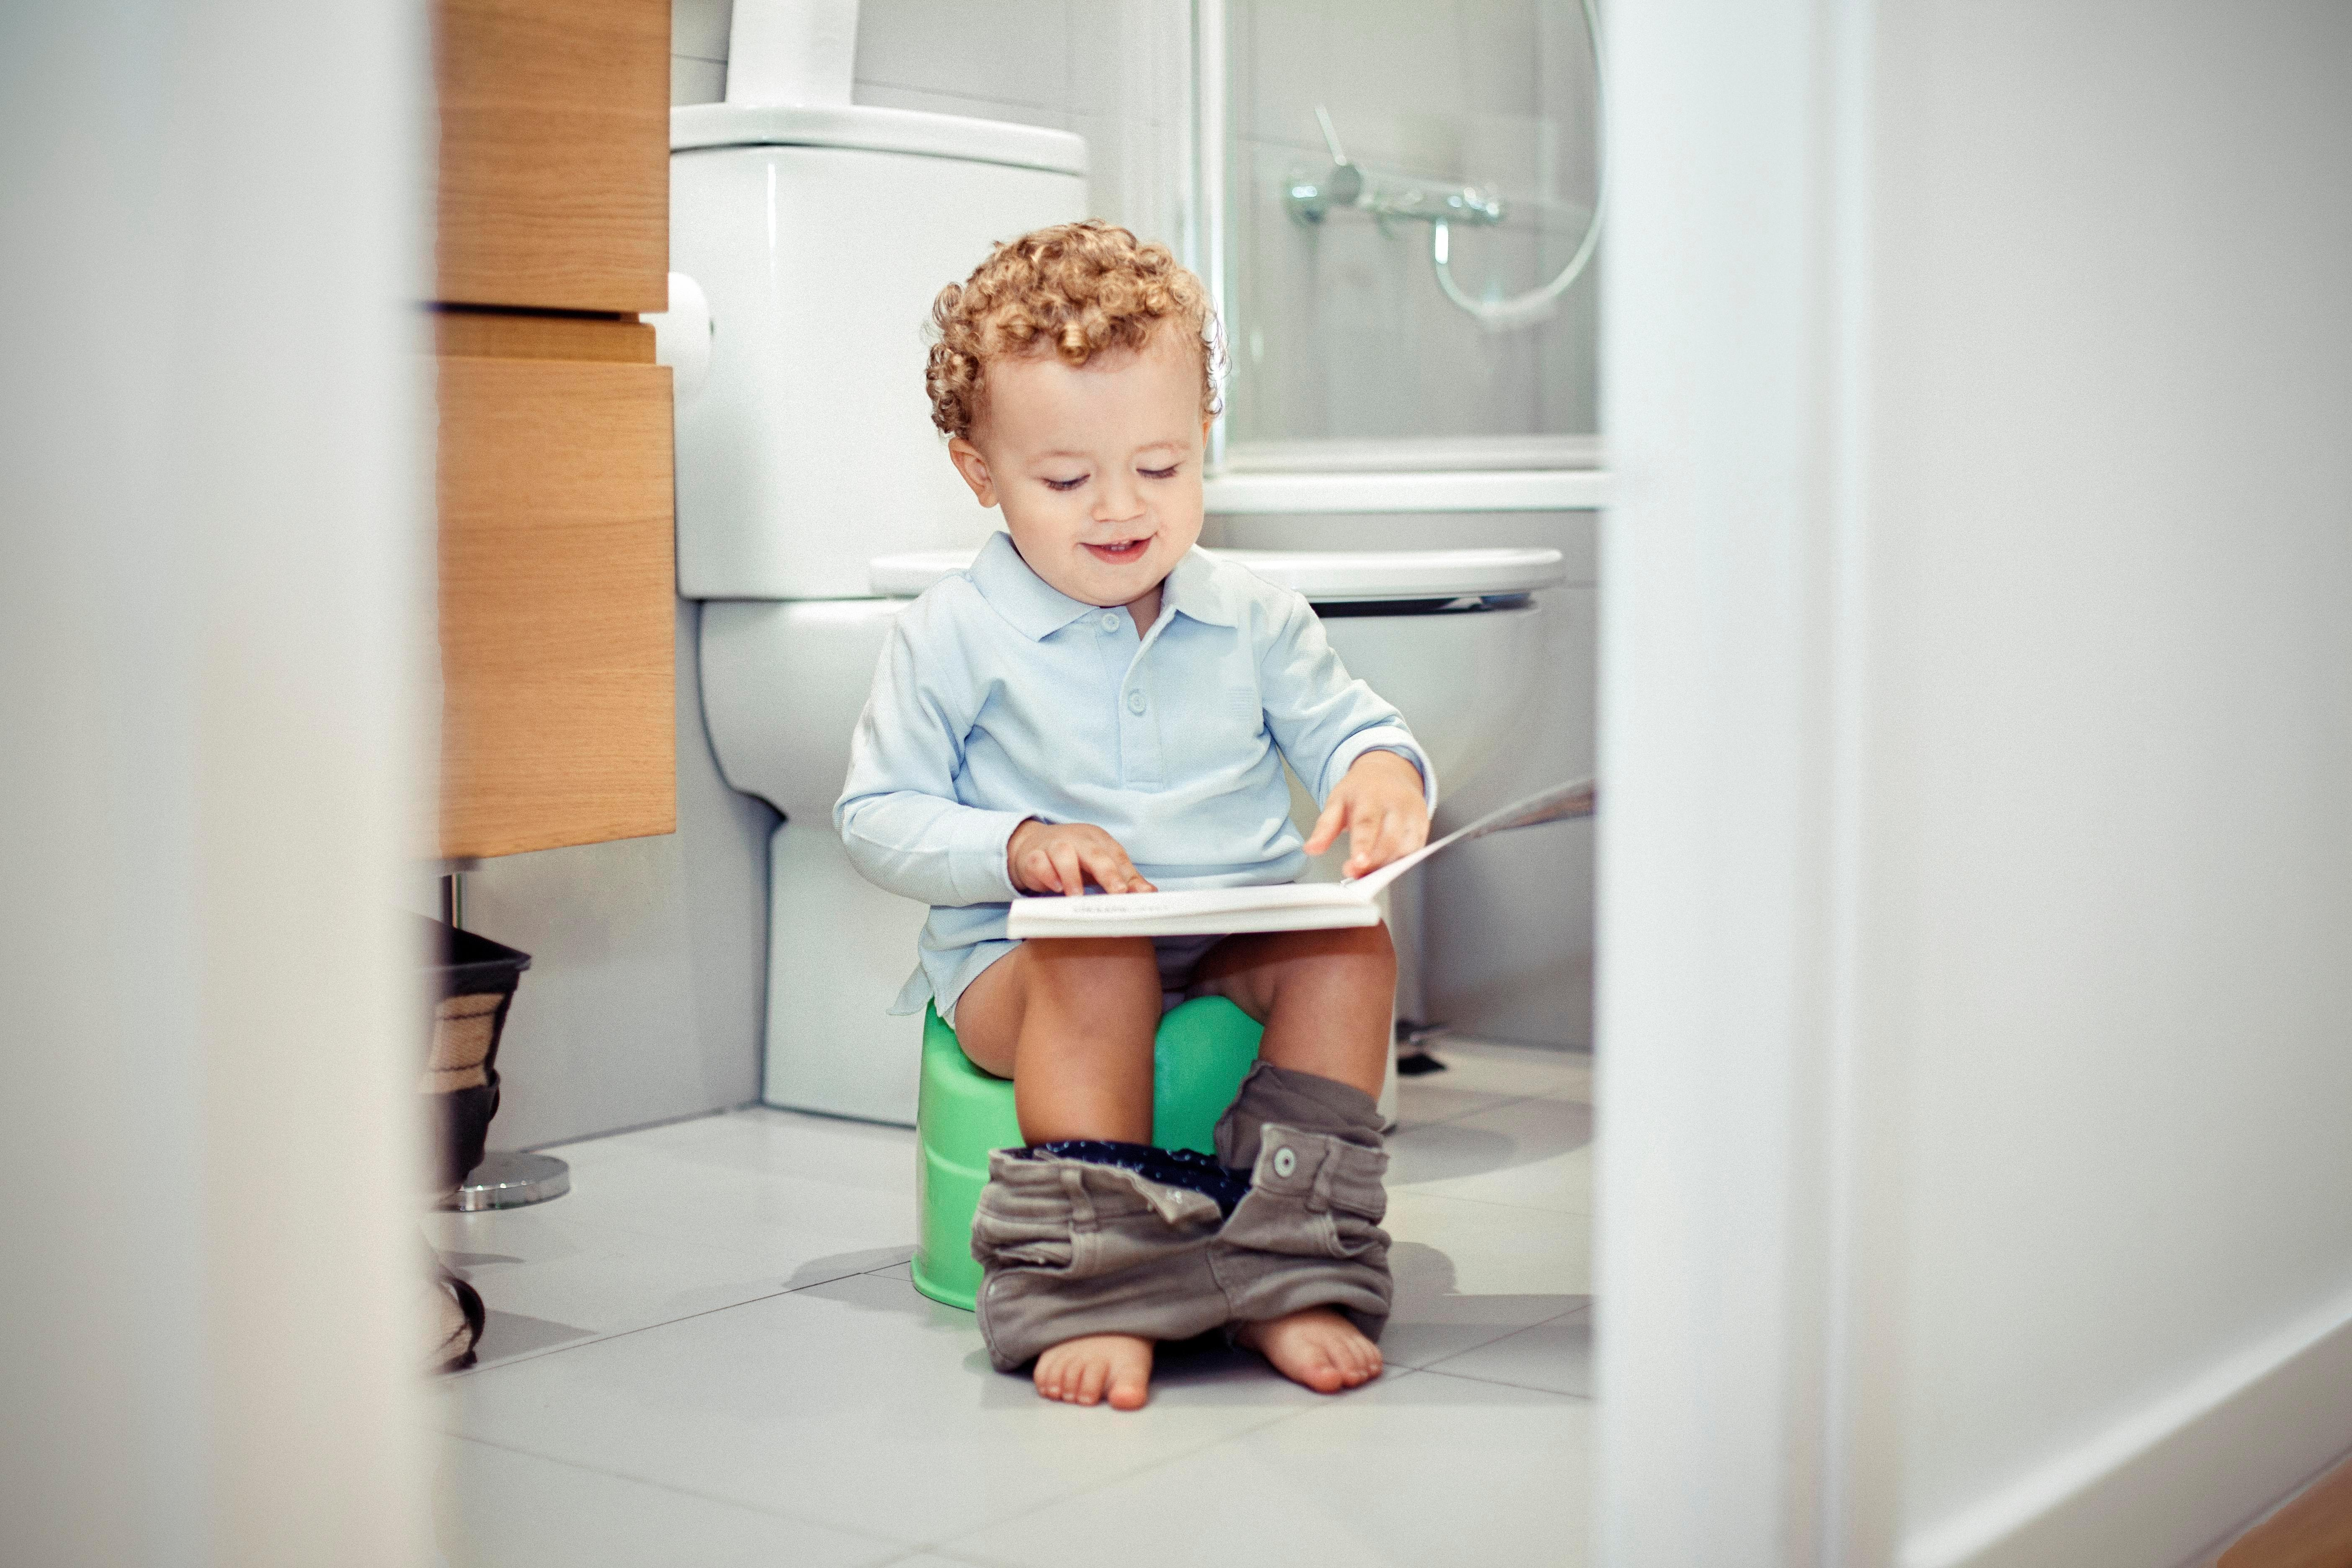 While Britain is in the midst of a toilet-training crisis we share our top tips on teaching your child to use the loo